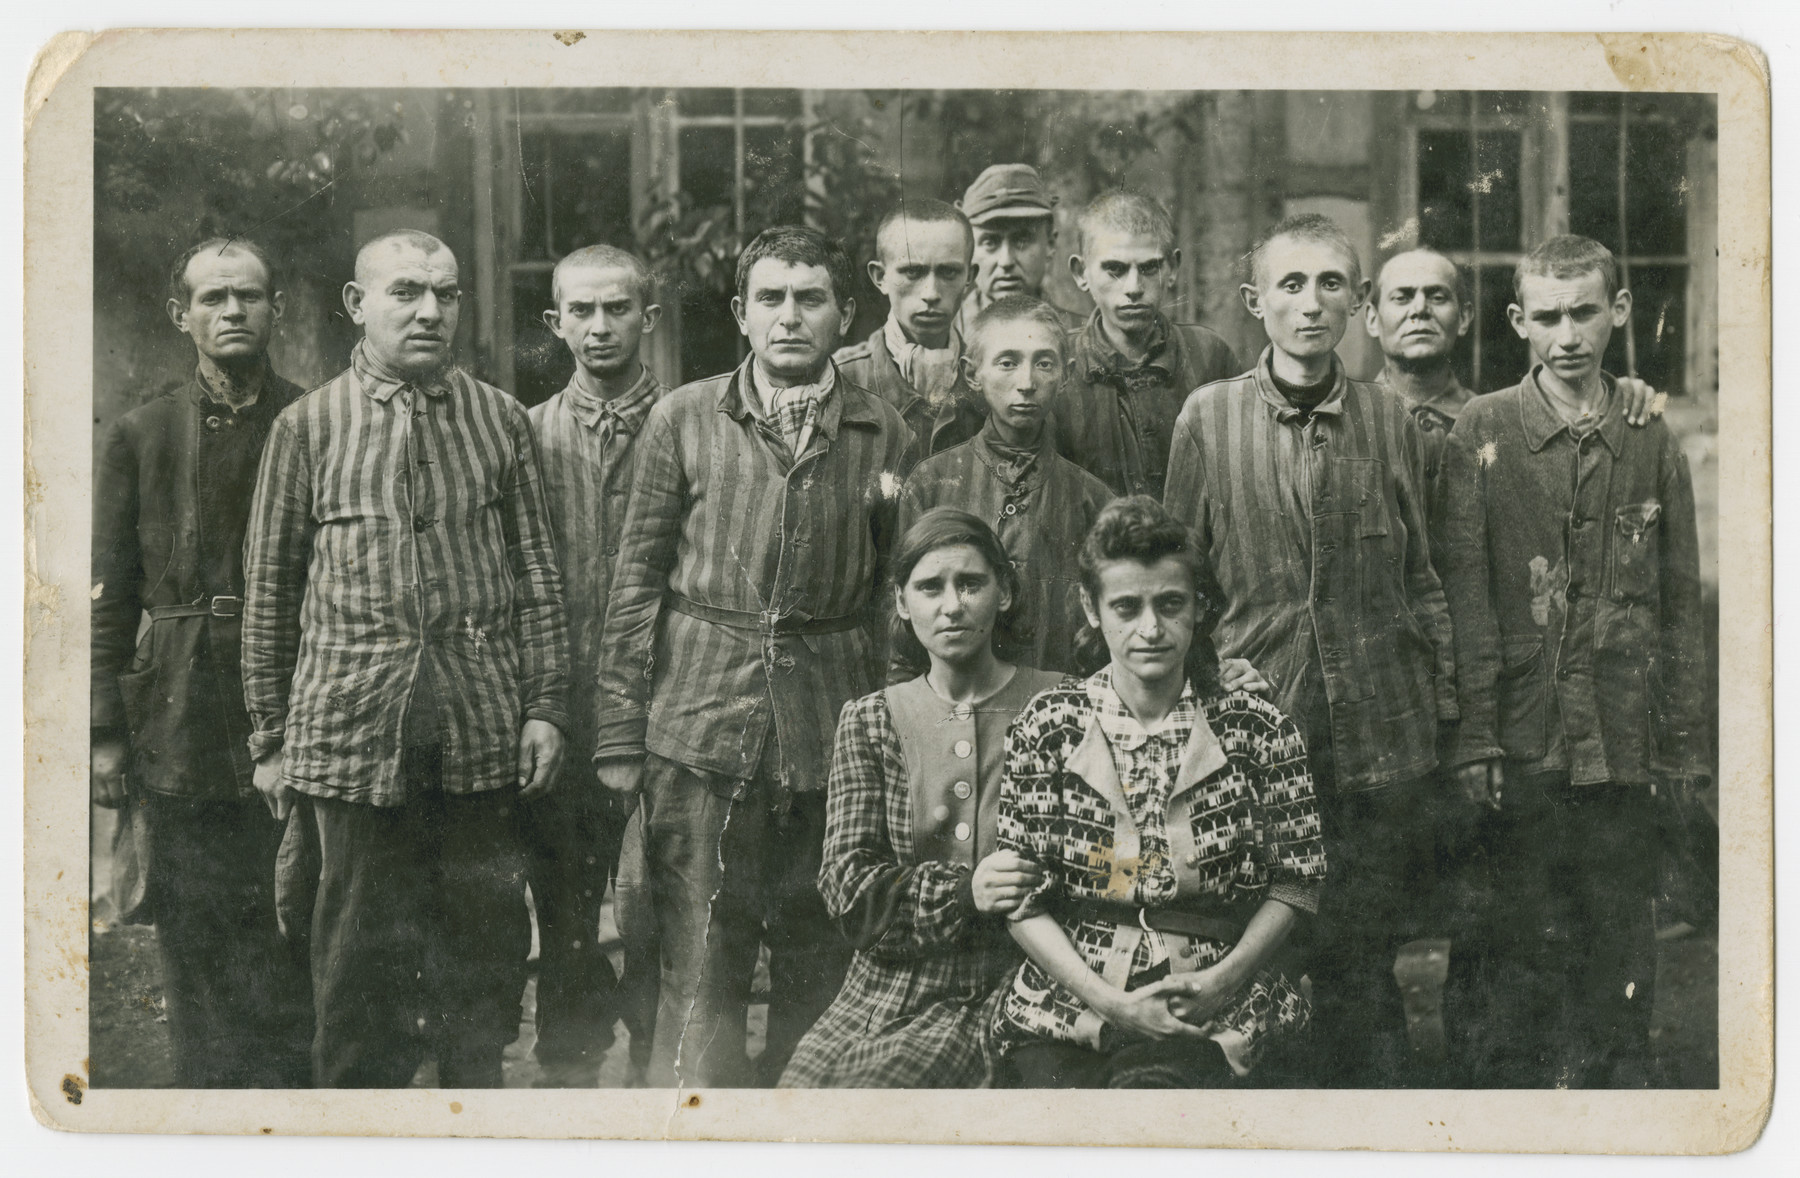 Group portrait of survivors, many still in uniform, in the Dachau concentration camp.  Among those pictured are Zelda Feldlaufer (mother of the donor), and Isak Lips (third from the left.)